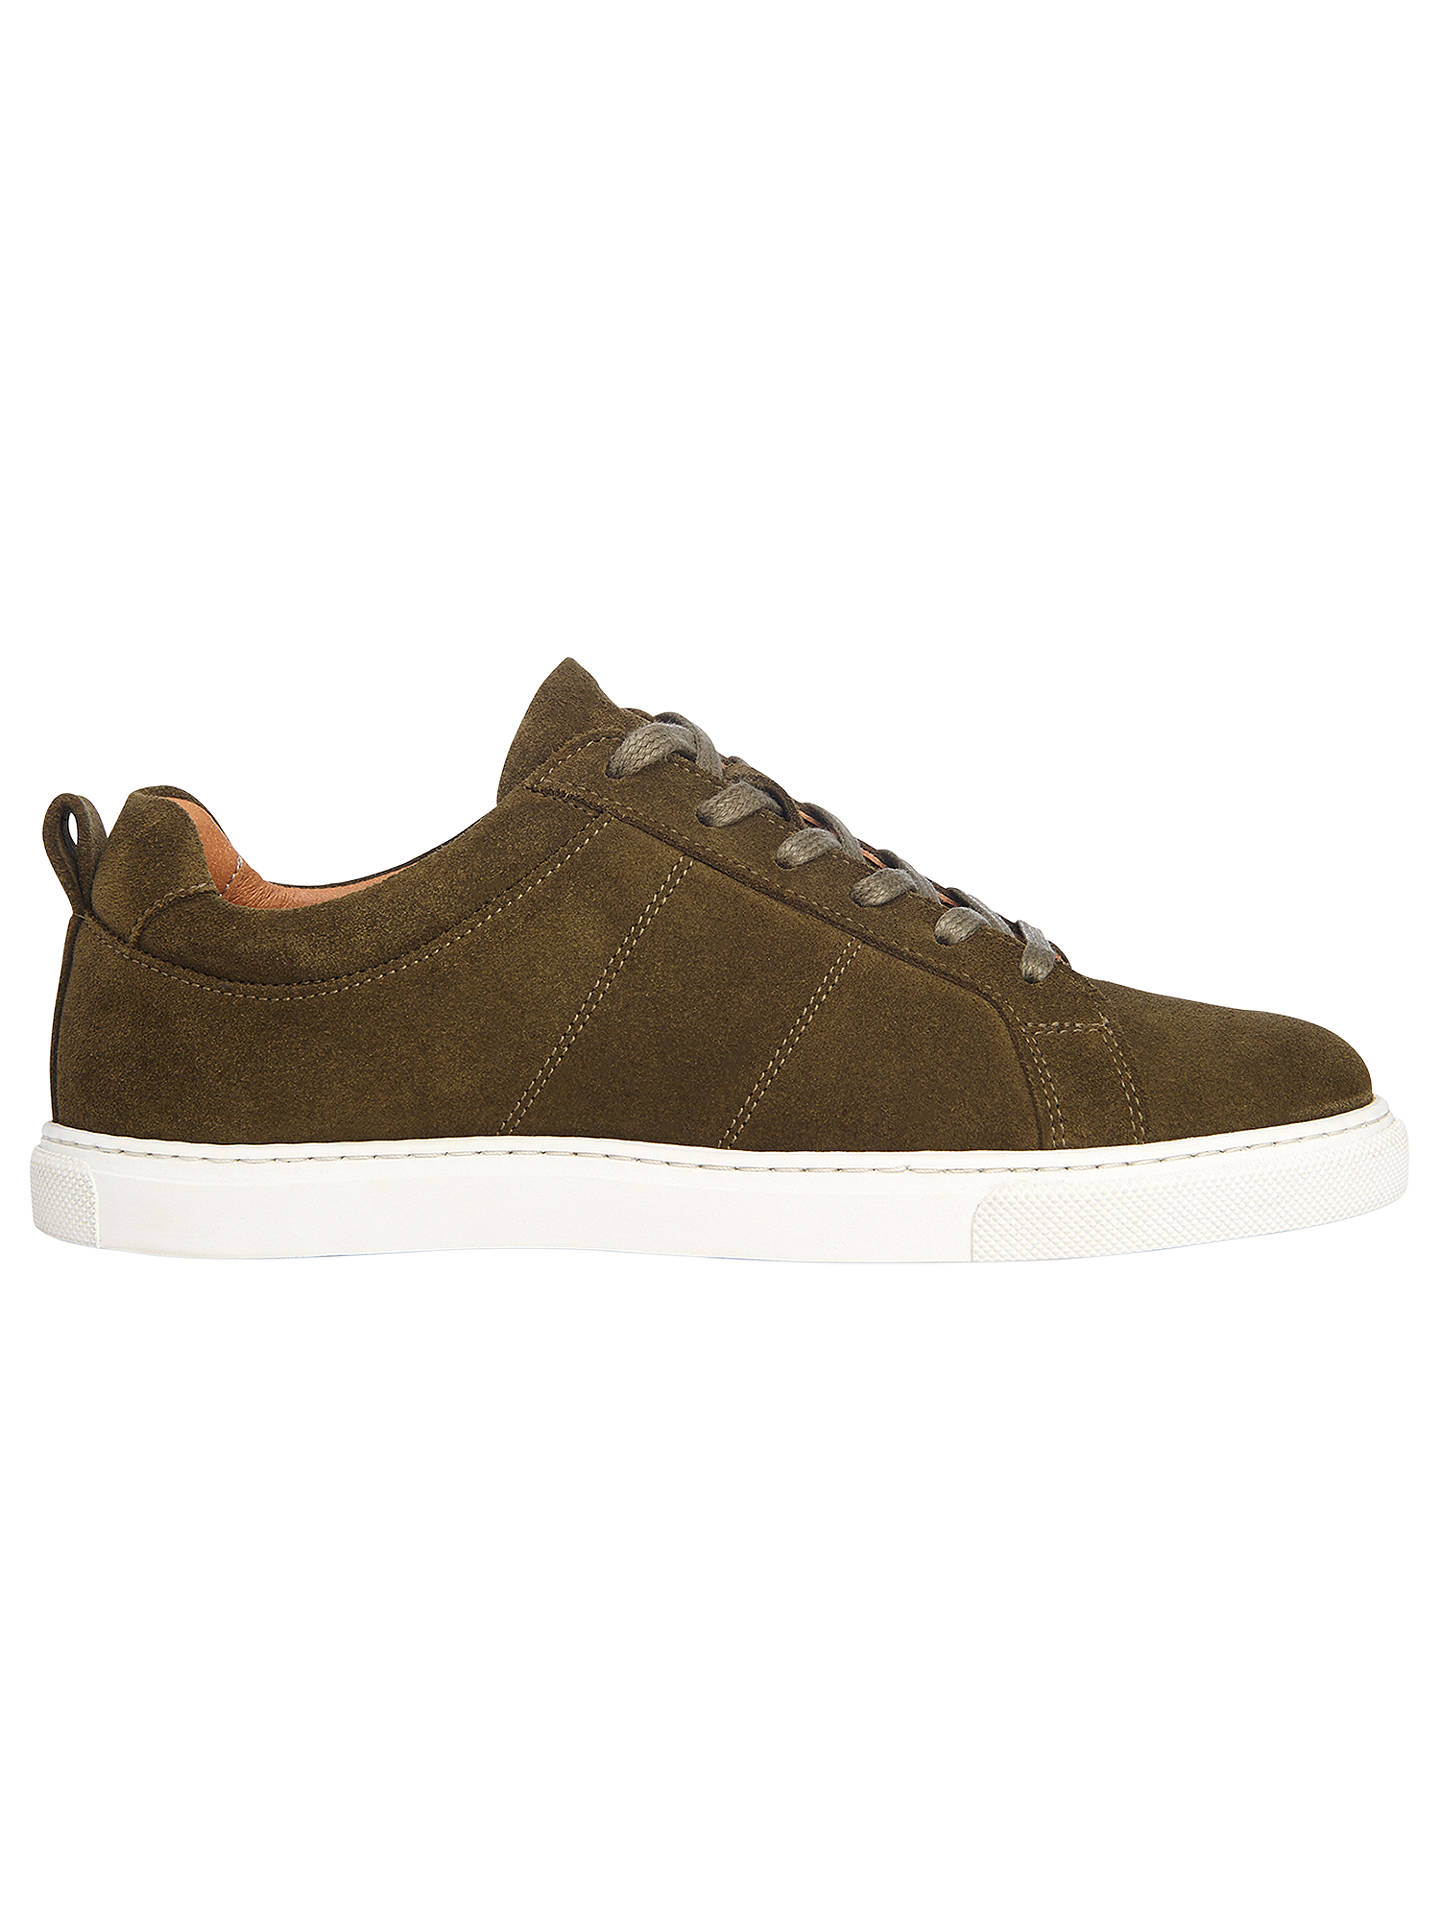 Whistles Koki Lace Up Trainers, Khaki Suede by Whistles